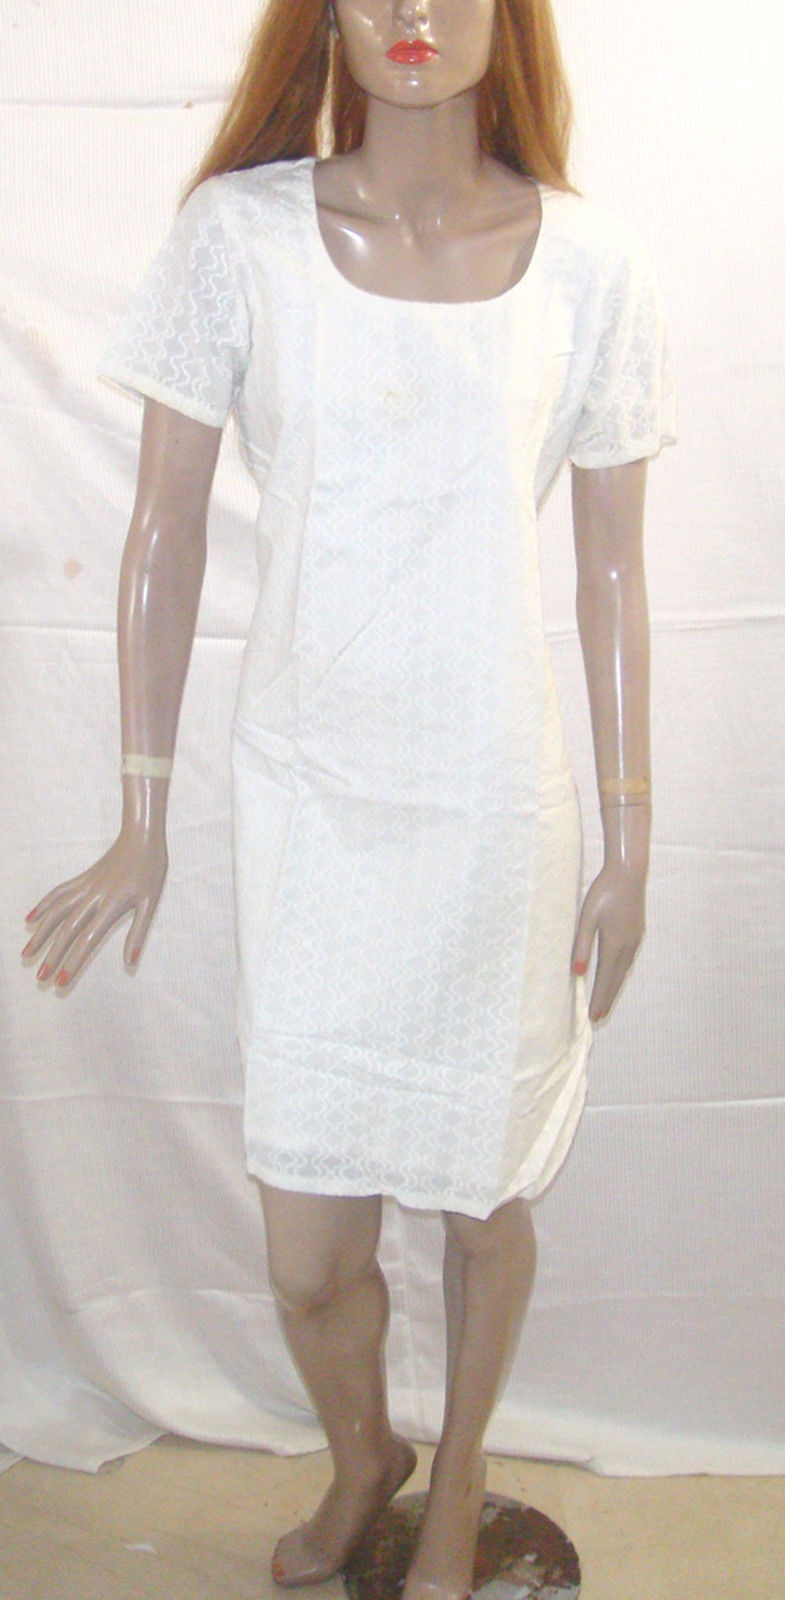 White 100% Cotton Yoga Indian Clothing Women kurta tunic Dress All sizes